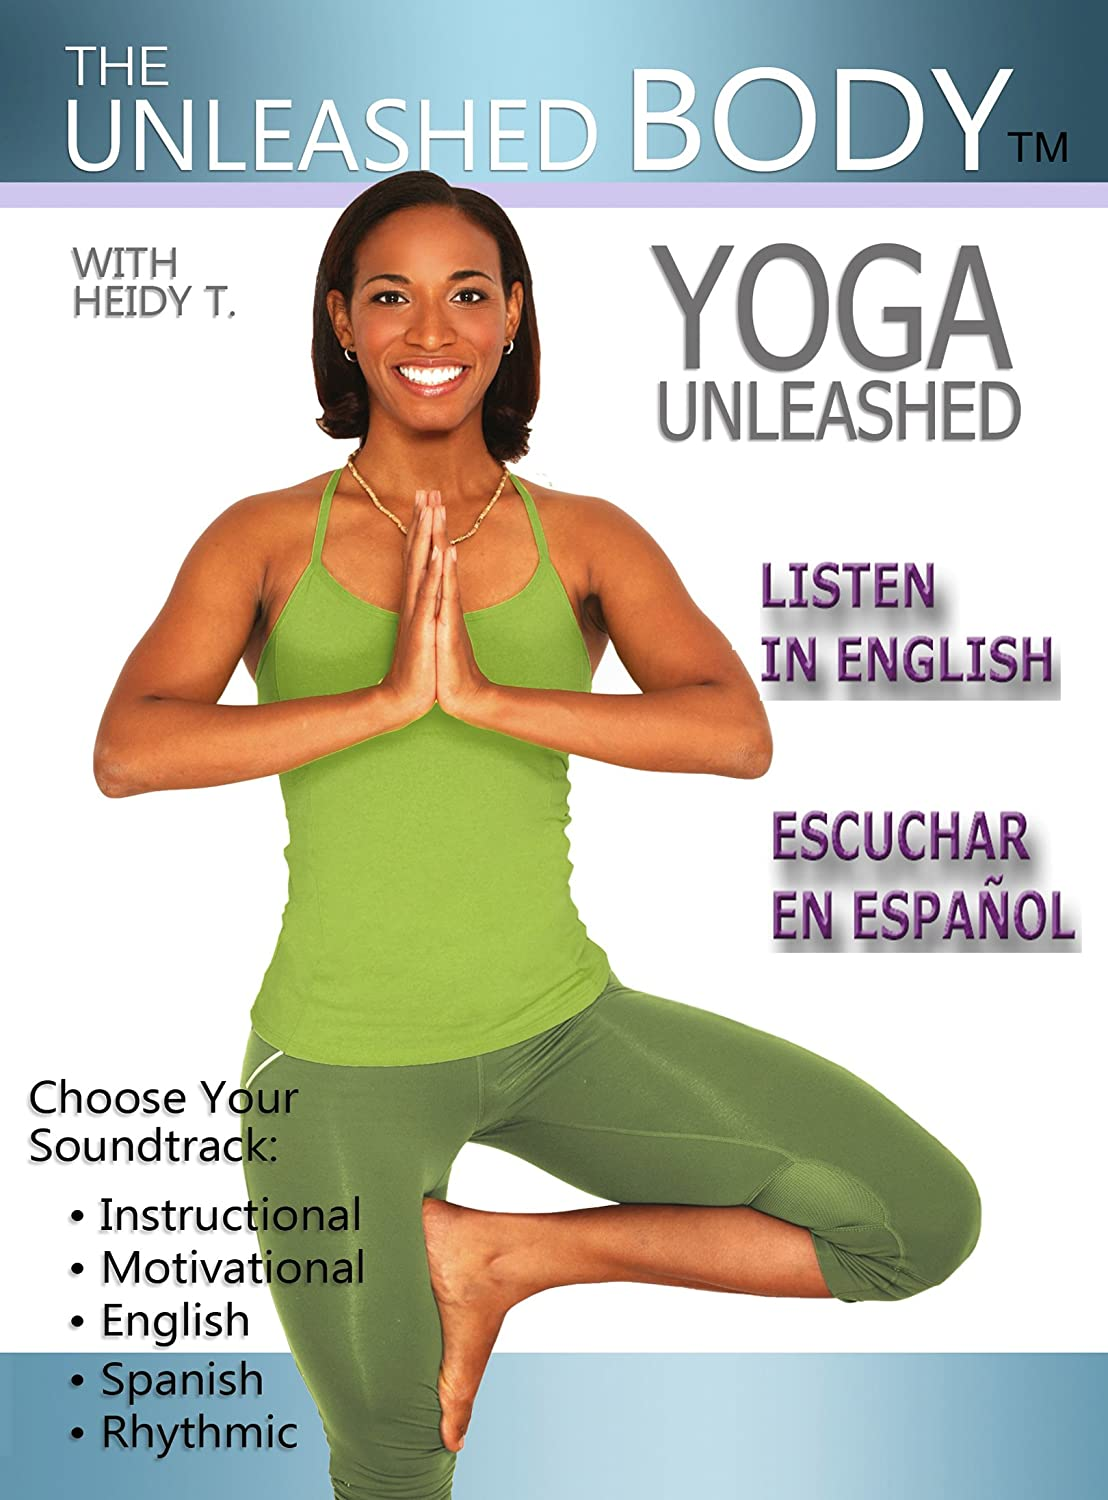 Amazon.com: The Unleashed Body: Yoga Unleashed: Heidy T ...